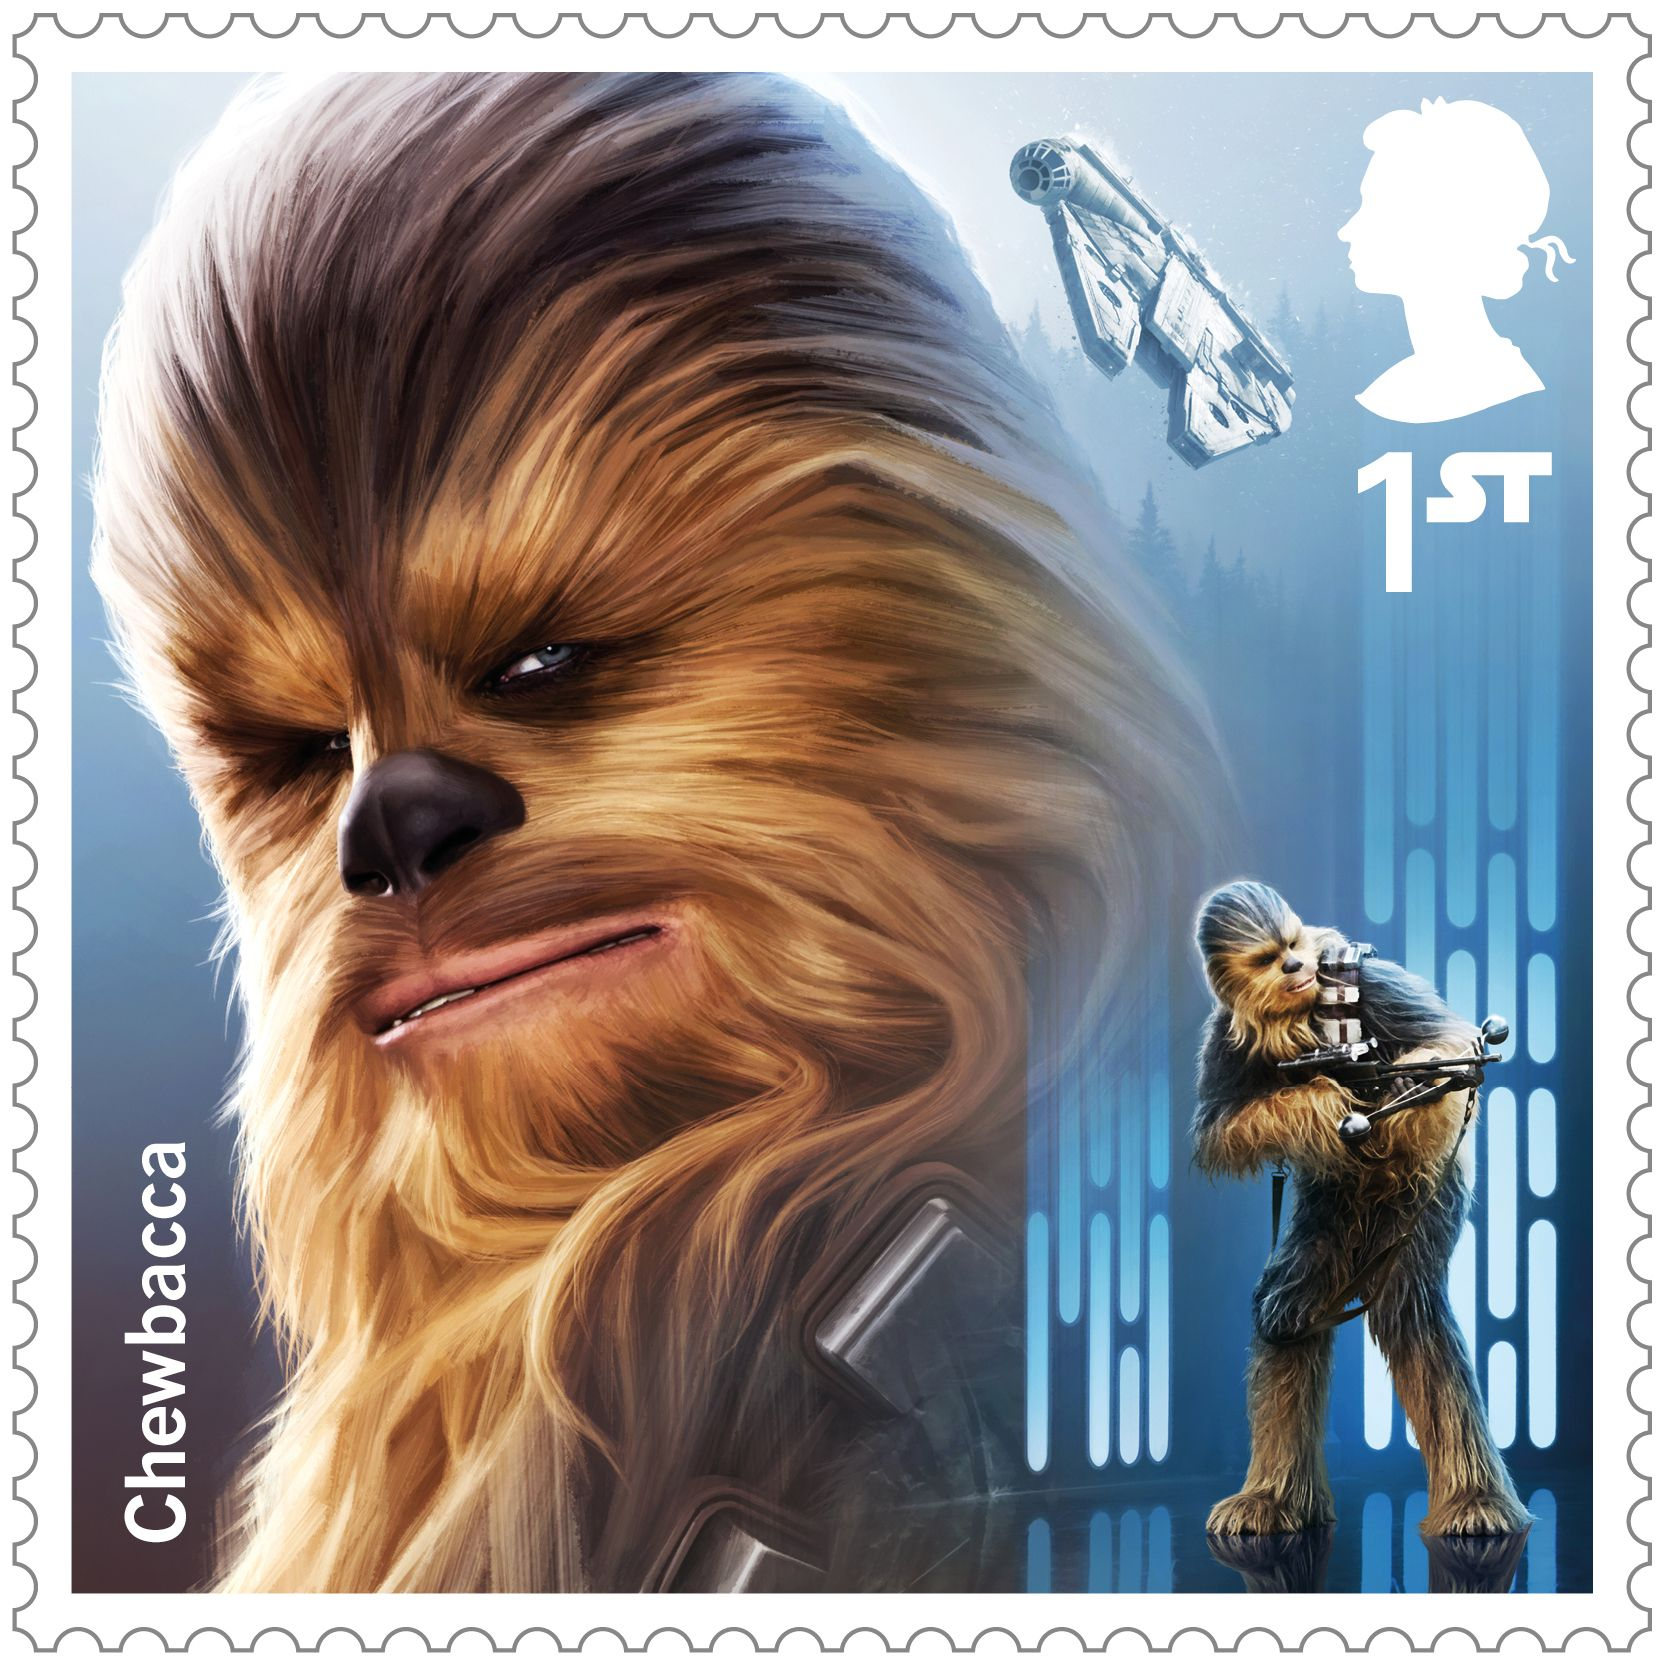 Star Wars Droids And Aliens 1st Stamp 2017 Chewbacca